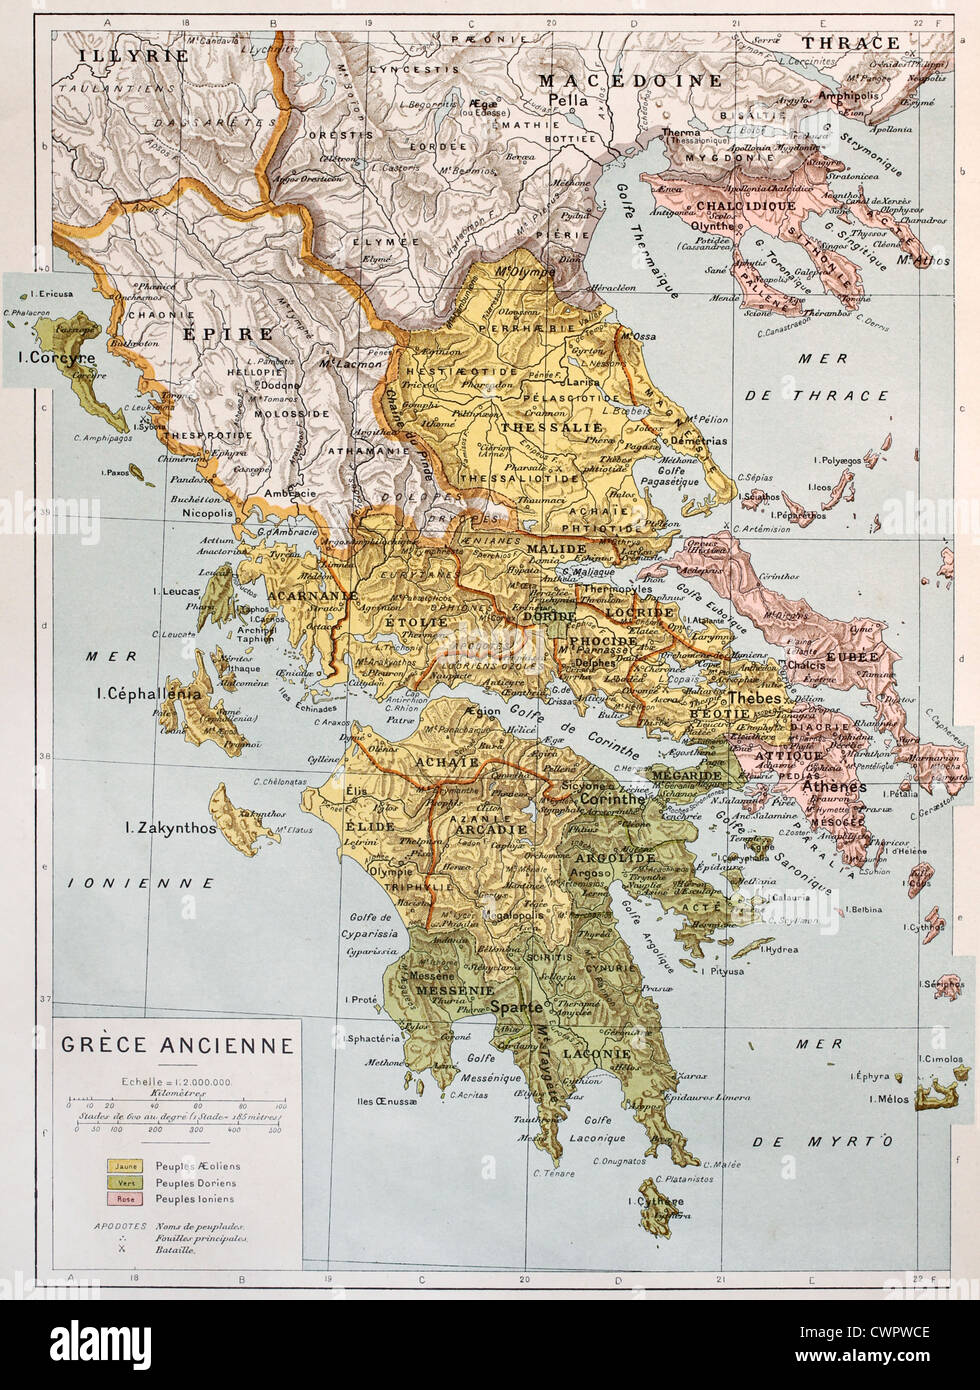 Old map of ancient greece stock photo royalty free image old map of ancient greece gumiabroncs Image collections